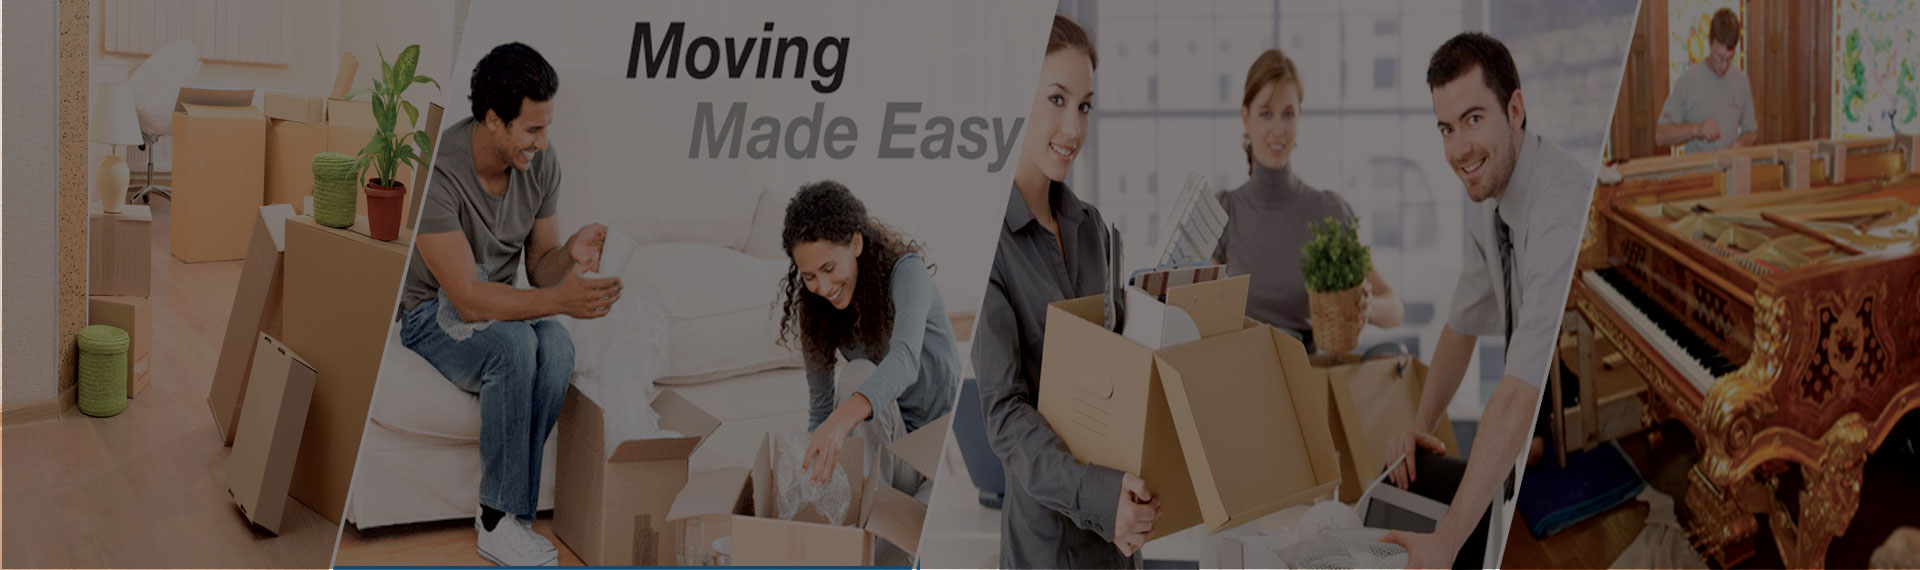 JV Moving Corp Queens NY